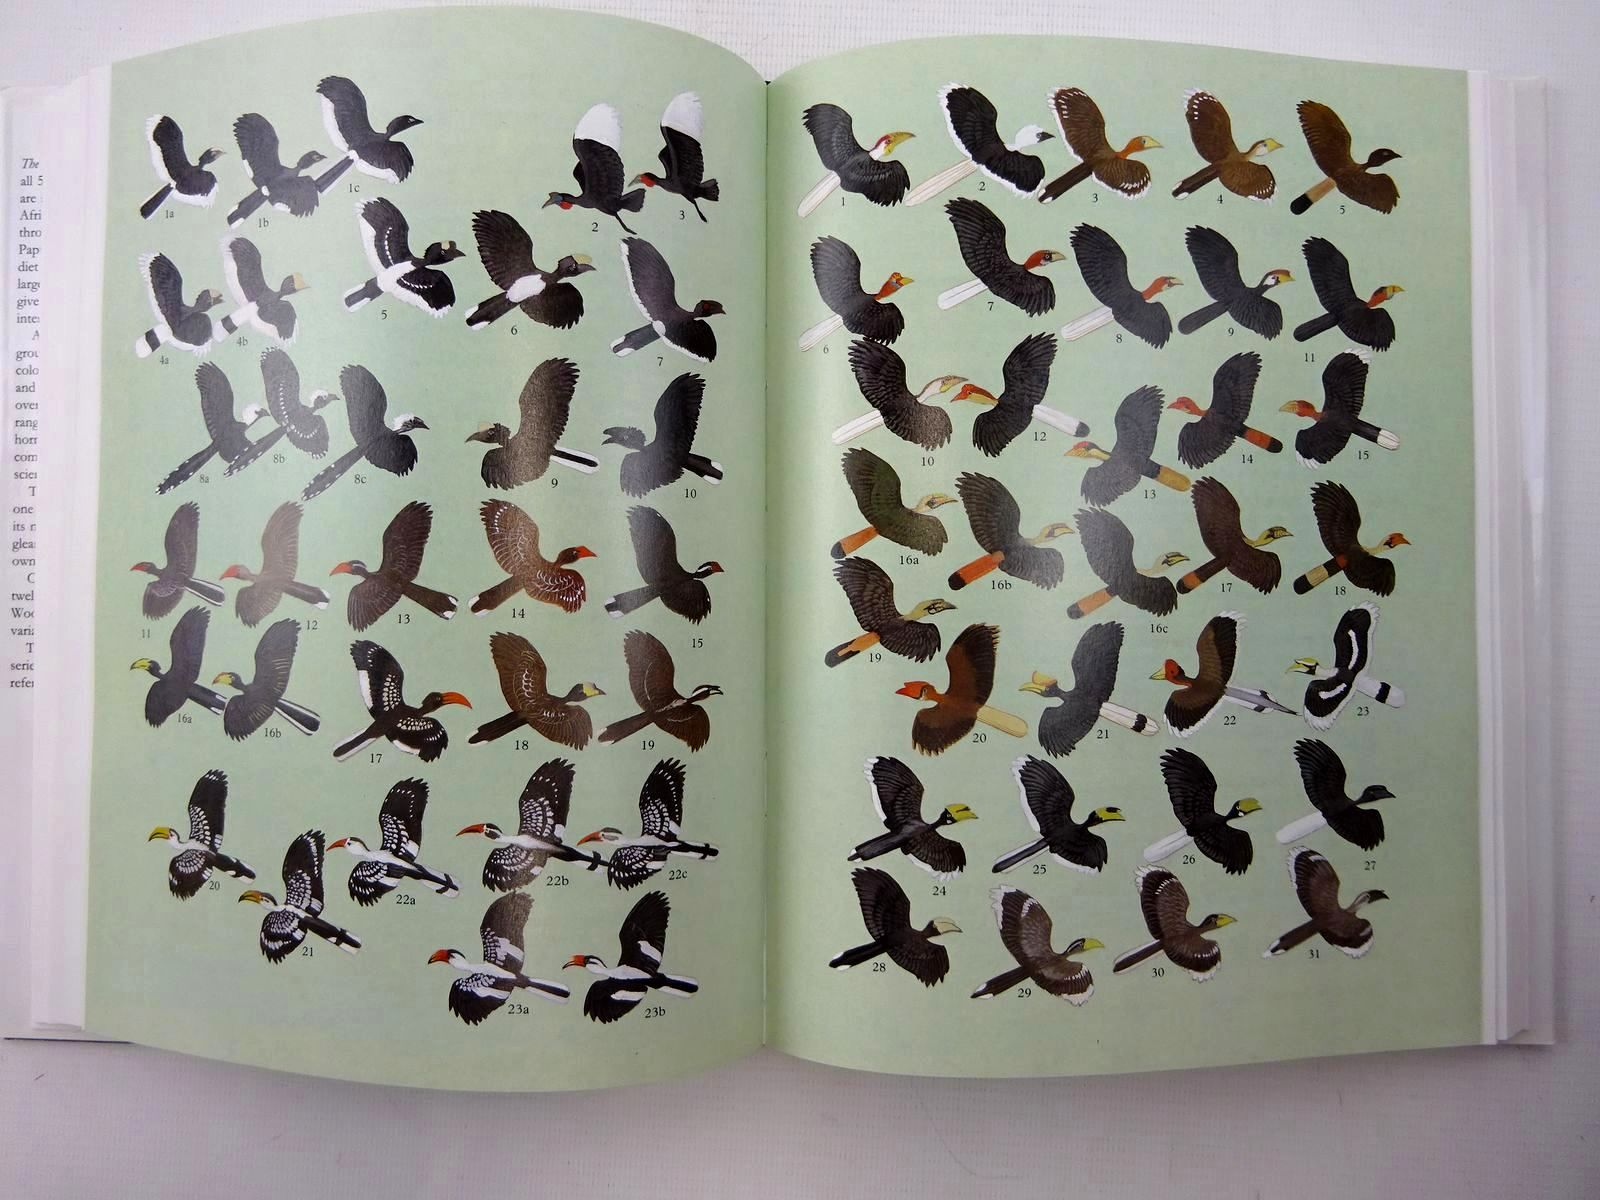 Photo of THE HORNBILLS: BUCEROTIFORMES (BIRD FAMILIES OF THE WORLD SERIES) written by Kemp, Alan illustrated by Woodcock, Martin published by Oxford University Press (STOCK CODE: 1815974)  for sale by Stella & Rose's Books